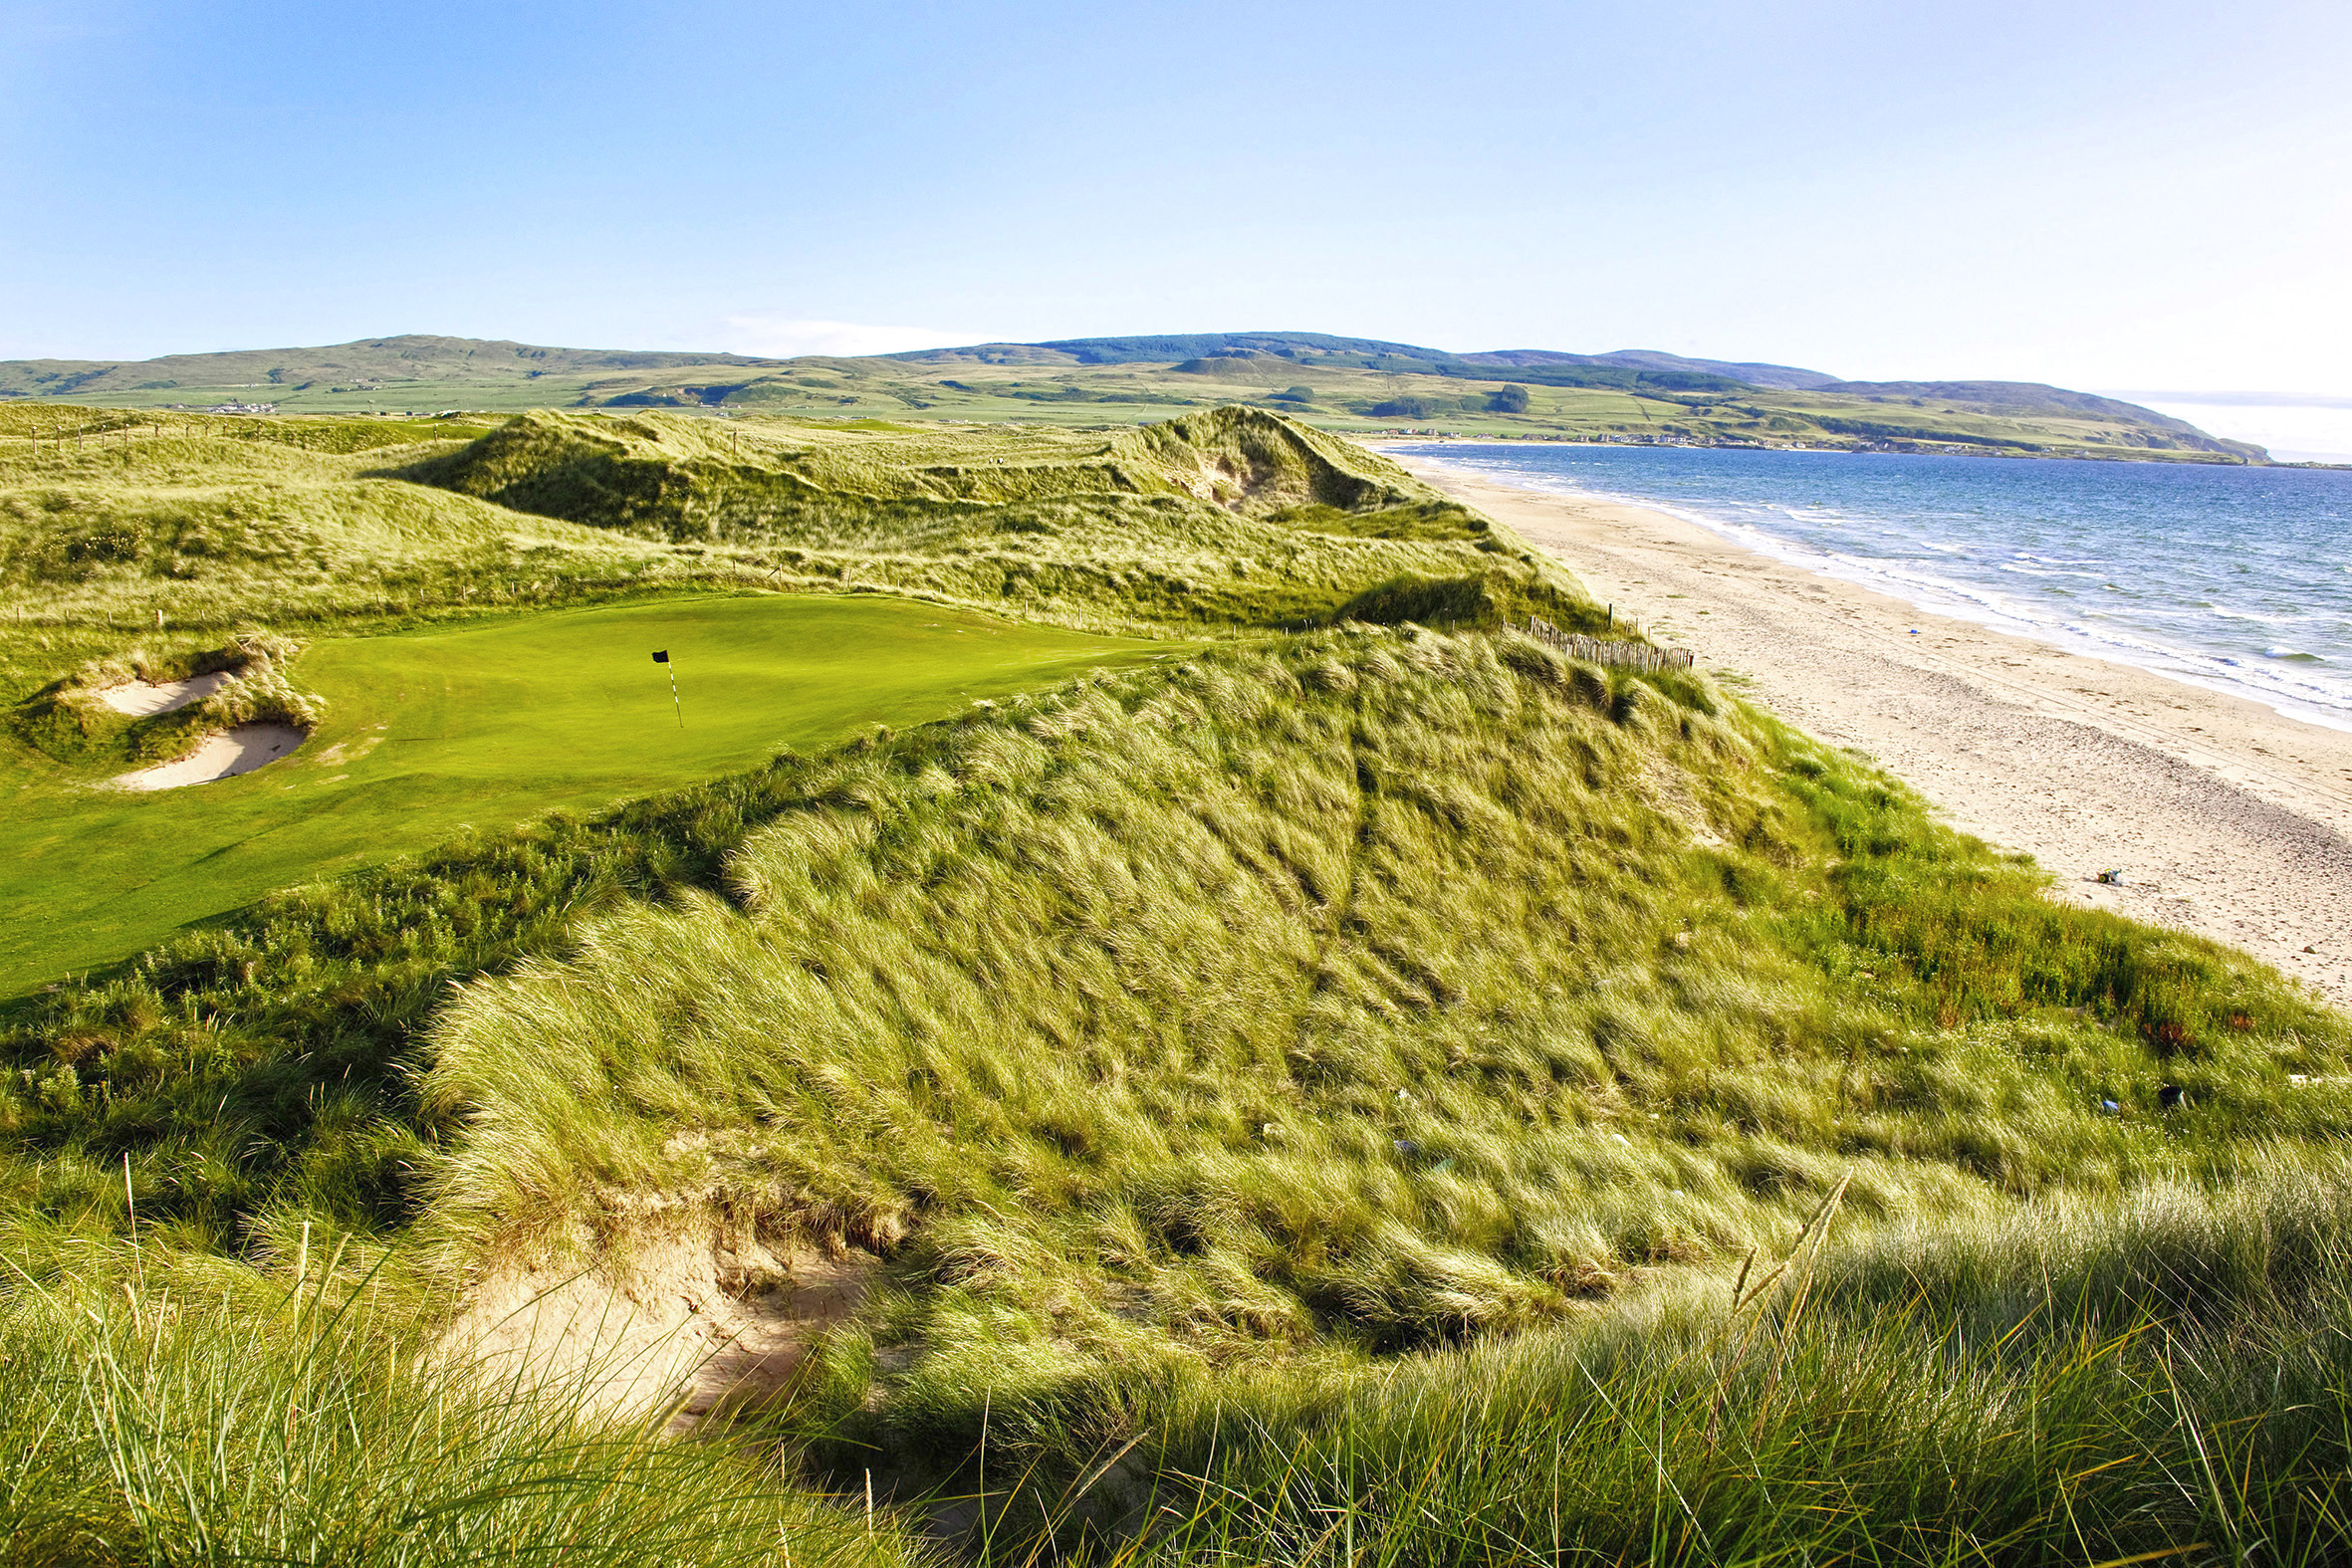 David McLay Kidd's phenomenal work at Machrihanish Dunes is a decade old and while it's quite a journey to reach the Mull Of Kintyre, the reward far outweighs the effort.